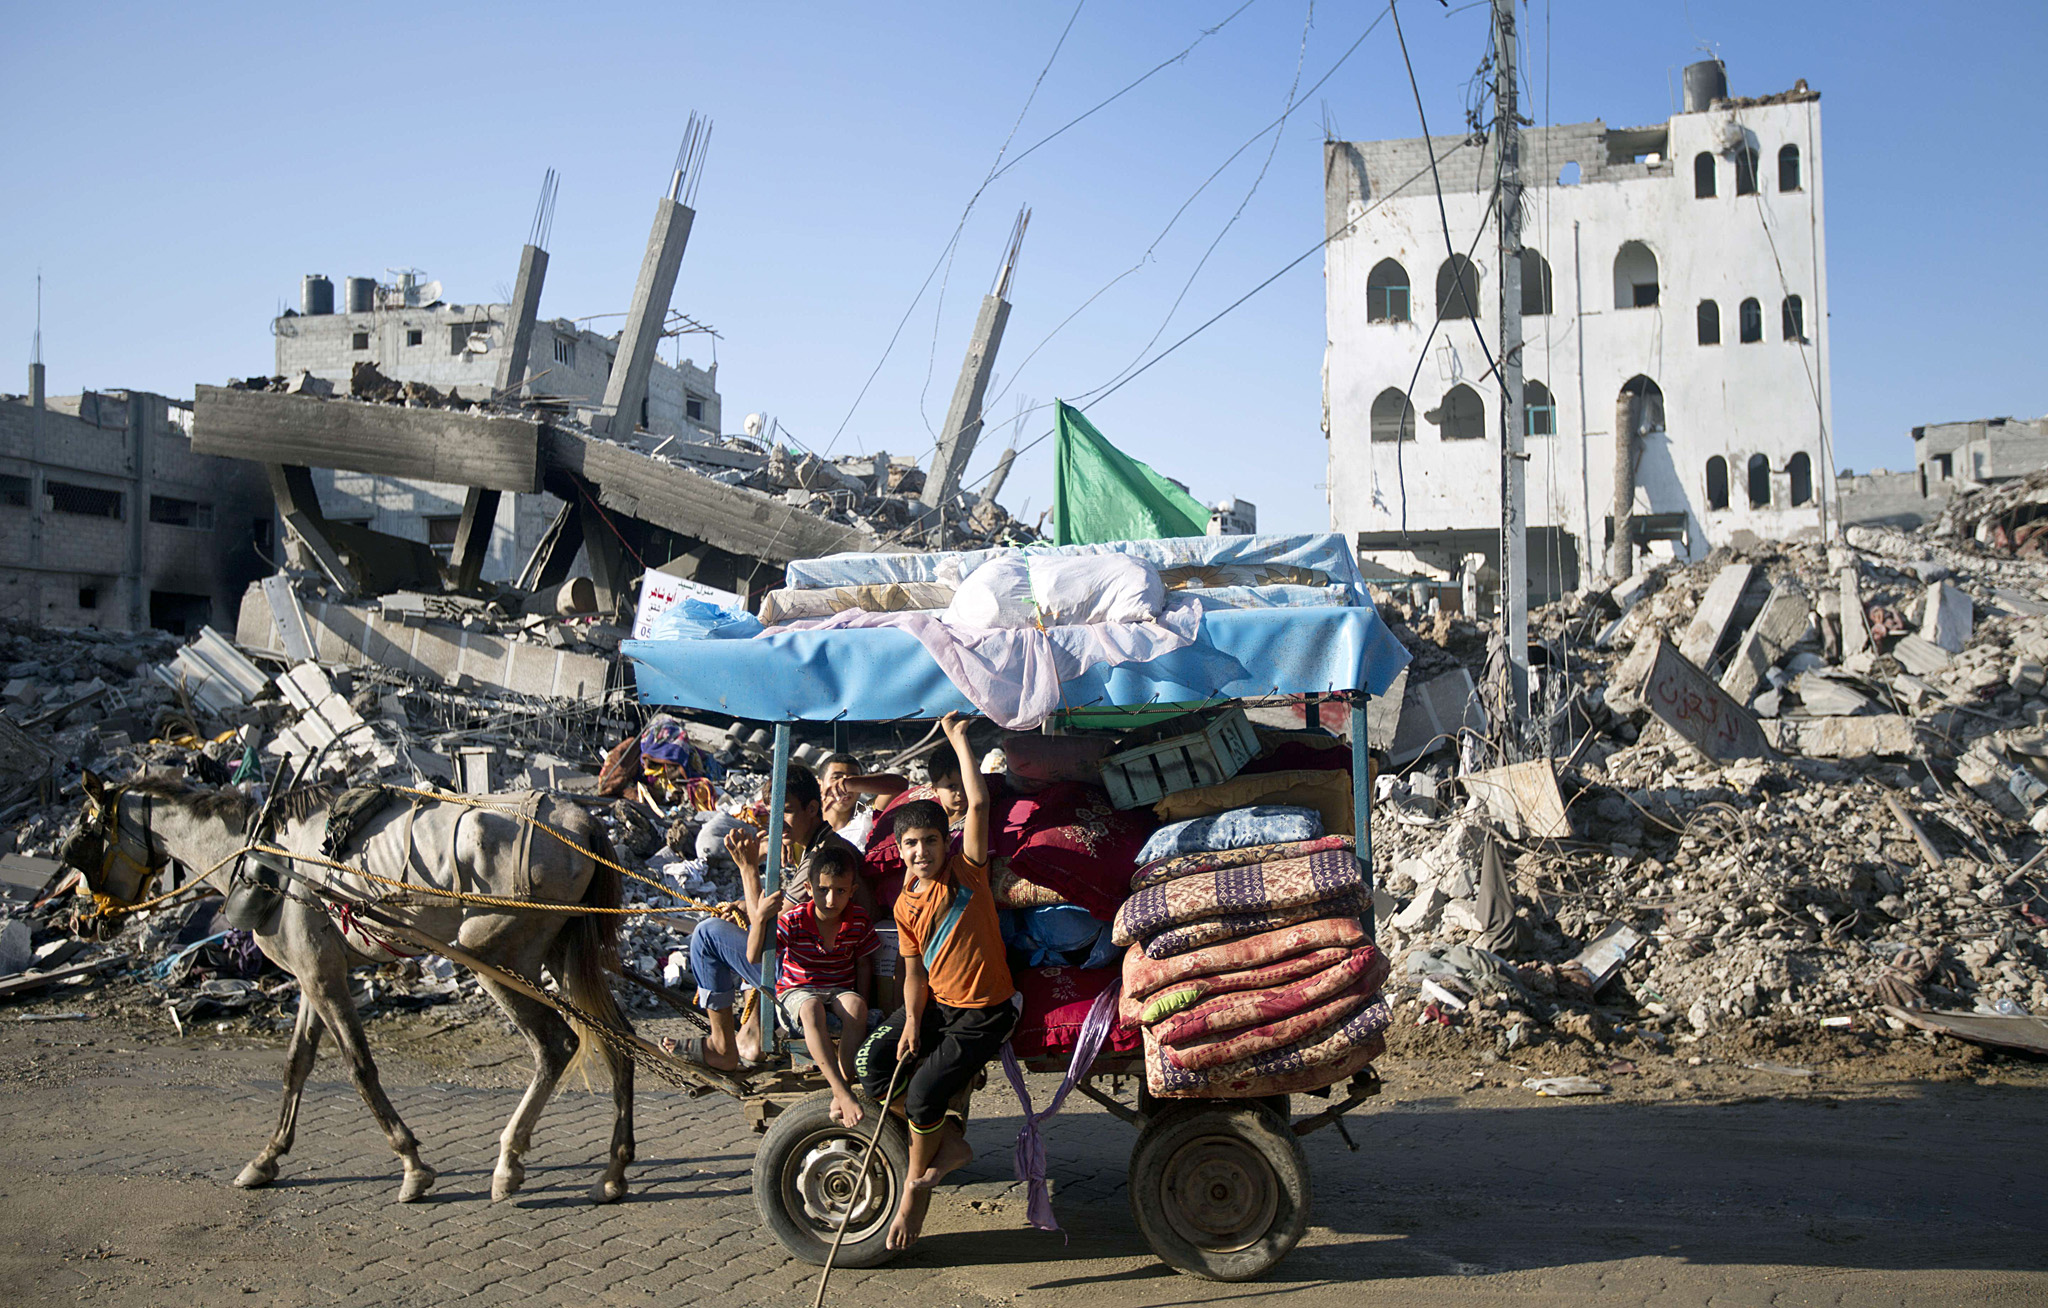 A group of Palestinian boys ride horse-d...A group of Palestinian boys ride horse-drawn cart past destroyed houses in the Shejaiya neighborhood of Gaza City on August 27, 2014, following the long-term truce agreed between Israel and the Palestinians. After seven weeks of the deadliest Israeli-Palestinian violence in a decade, a long-term ceasefire took hold at 1600 GMT on August 26, sparking festivities around the Gaza Strip. AFP PHOTO/MAHMUD HAMSMAHMUD HAMS/AFP/Getty Images